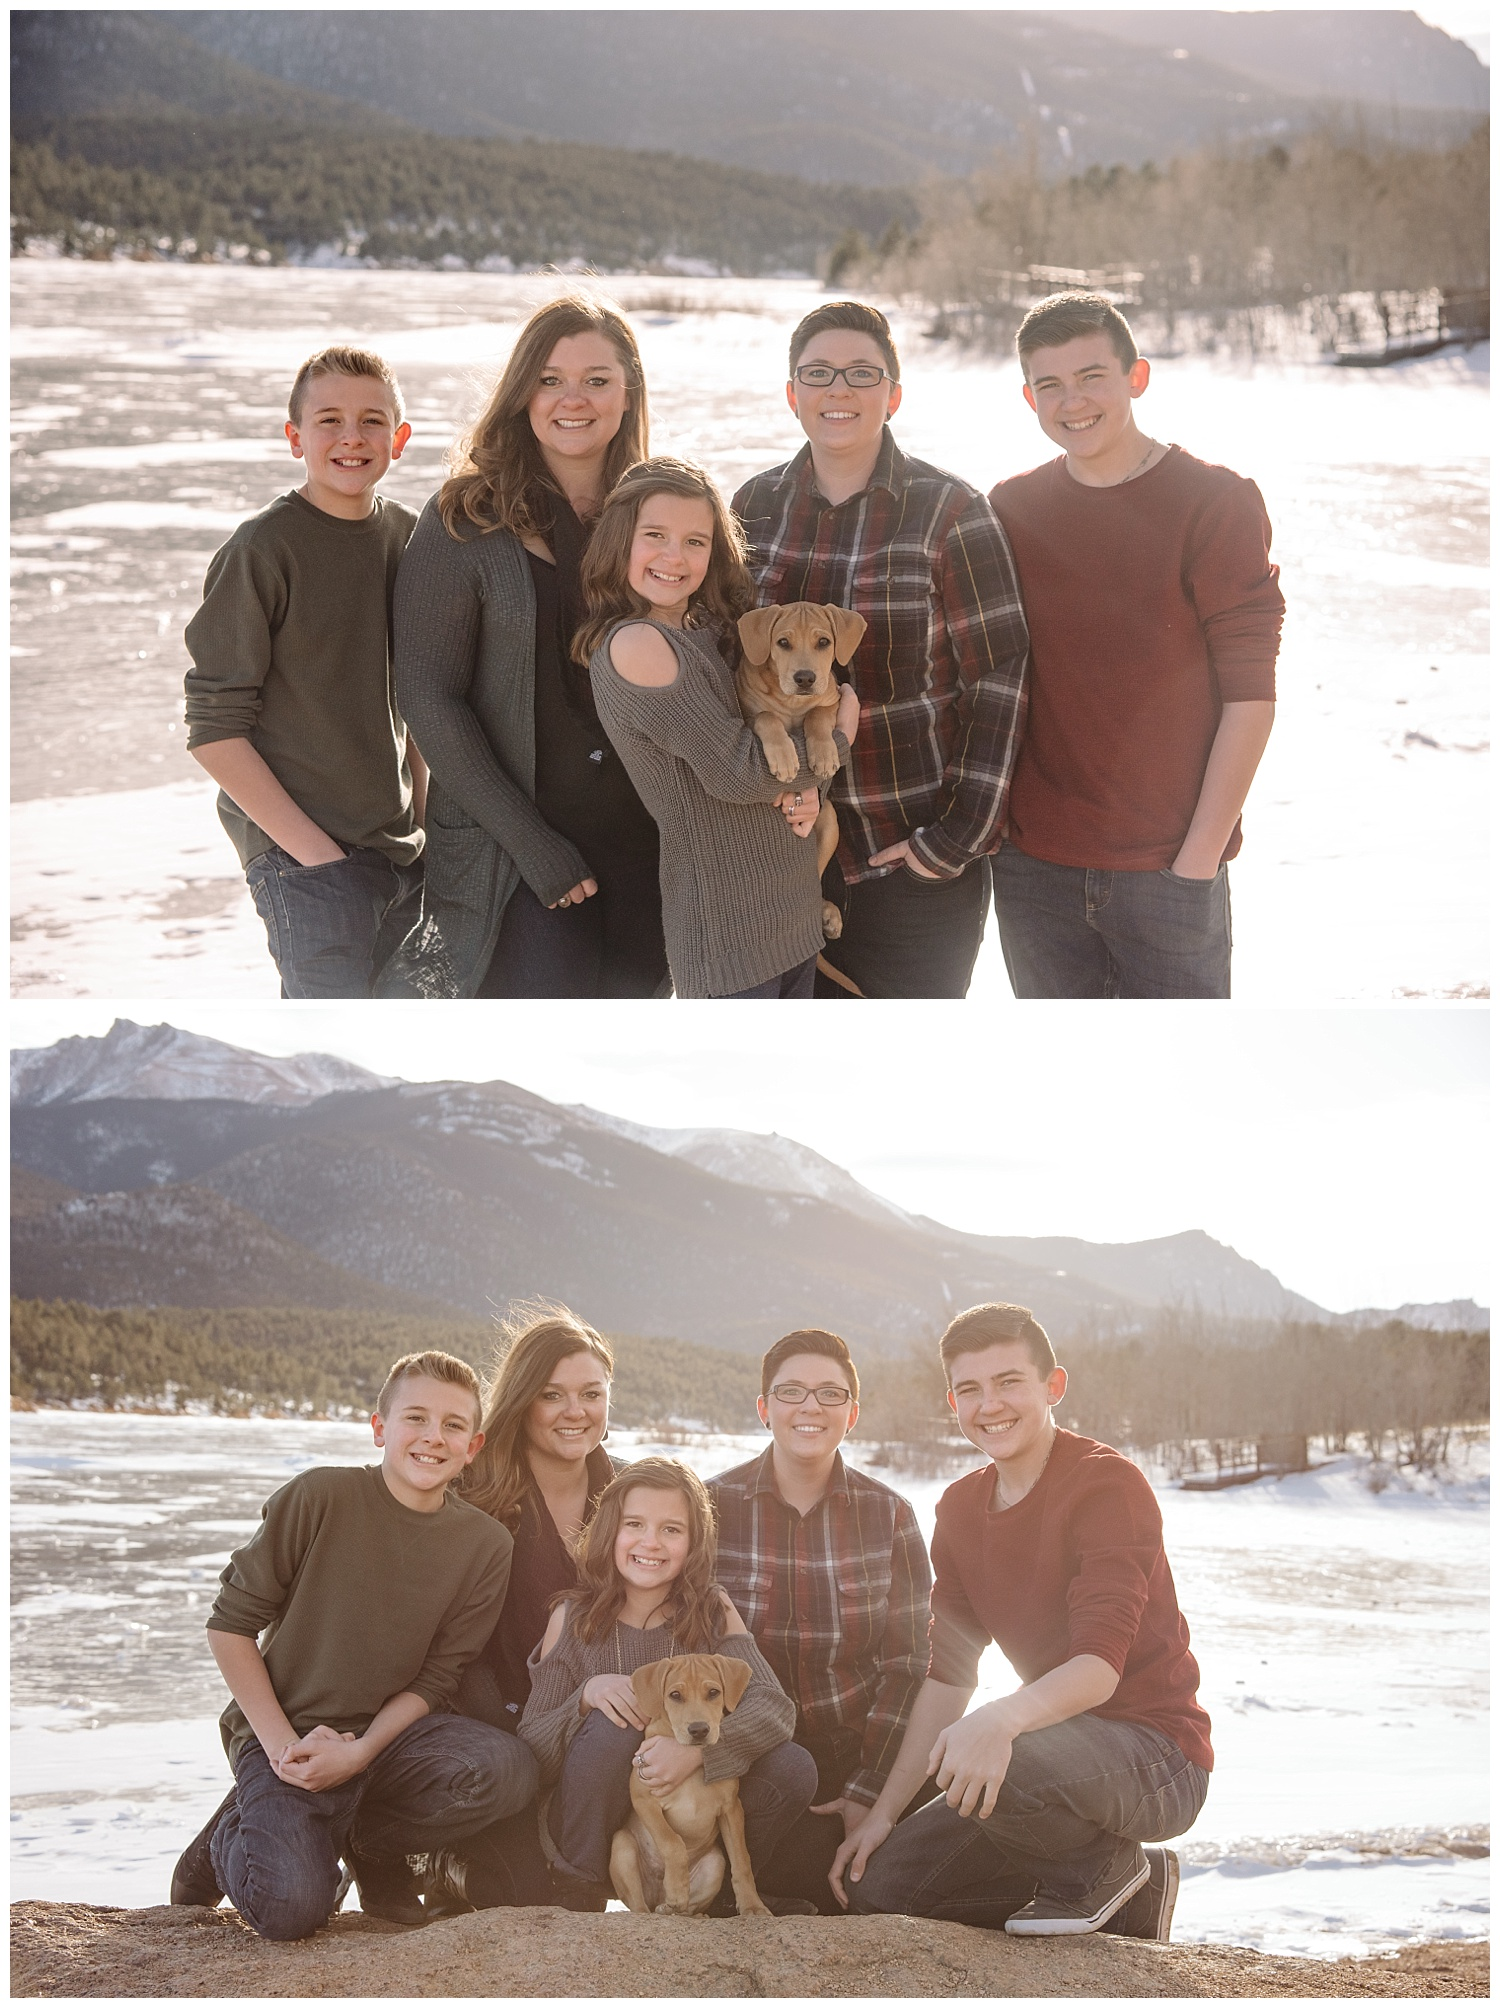 Young Family Posing 2 Moms | Jenny and Tara's Epic Mountain Engagement Session | Pikes Peak, Colorado Photography | Farm Wedding Photographer | Apollo Fields Wedding Photojournalism